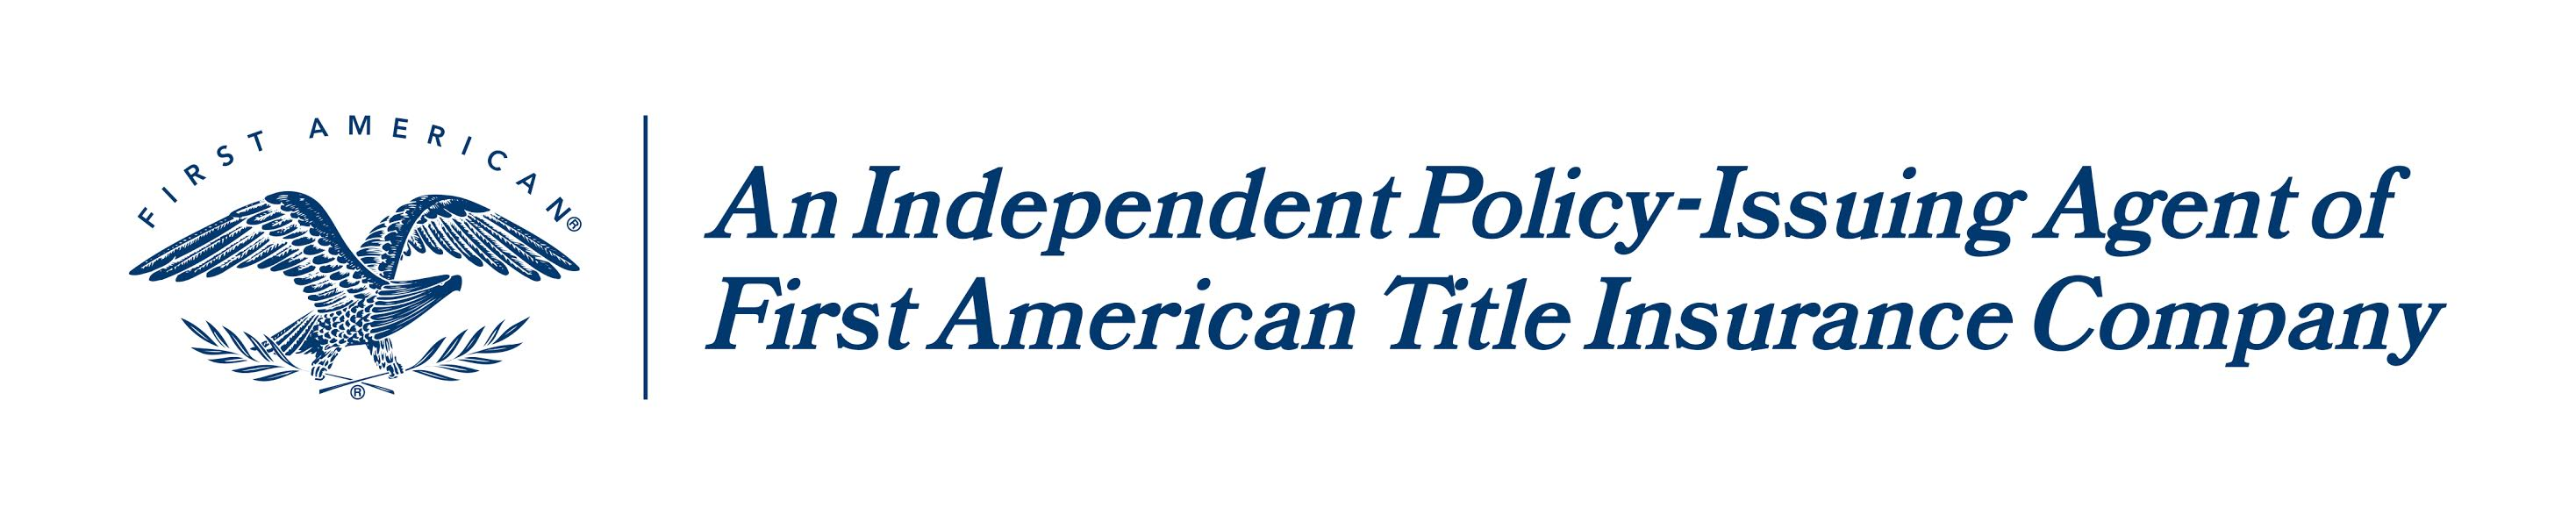 First American Title Co. logo